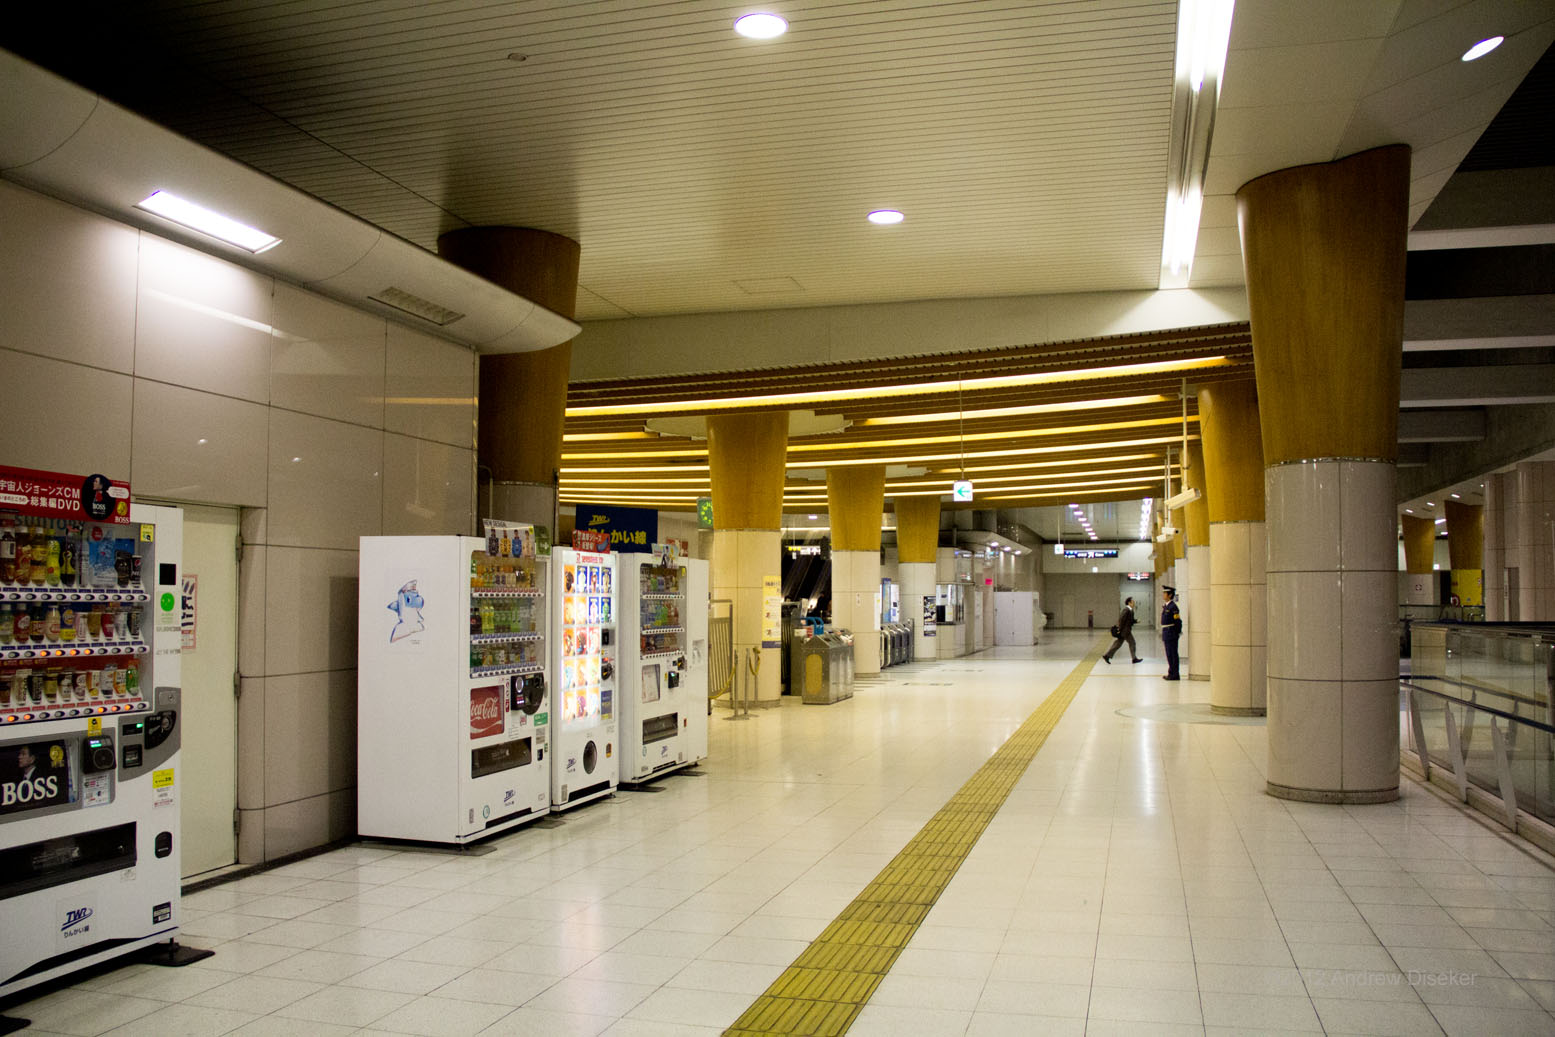 As with all of Japan, the station is guarded by both a guard, and a bank of vending machines, all ever at the ready!